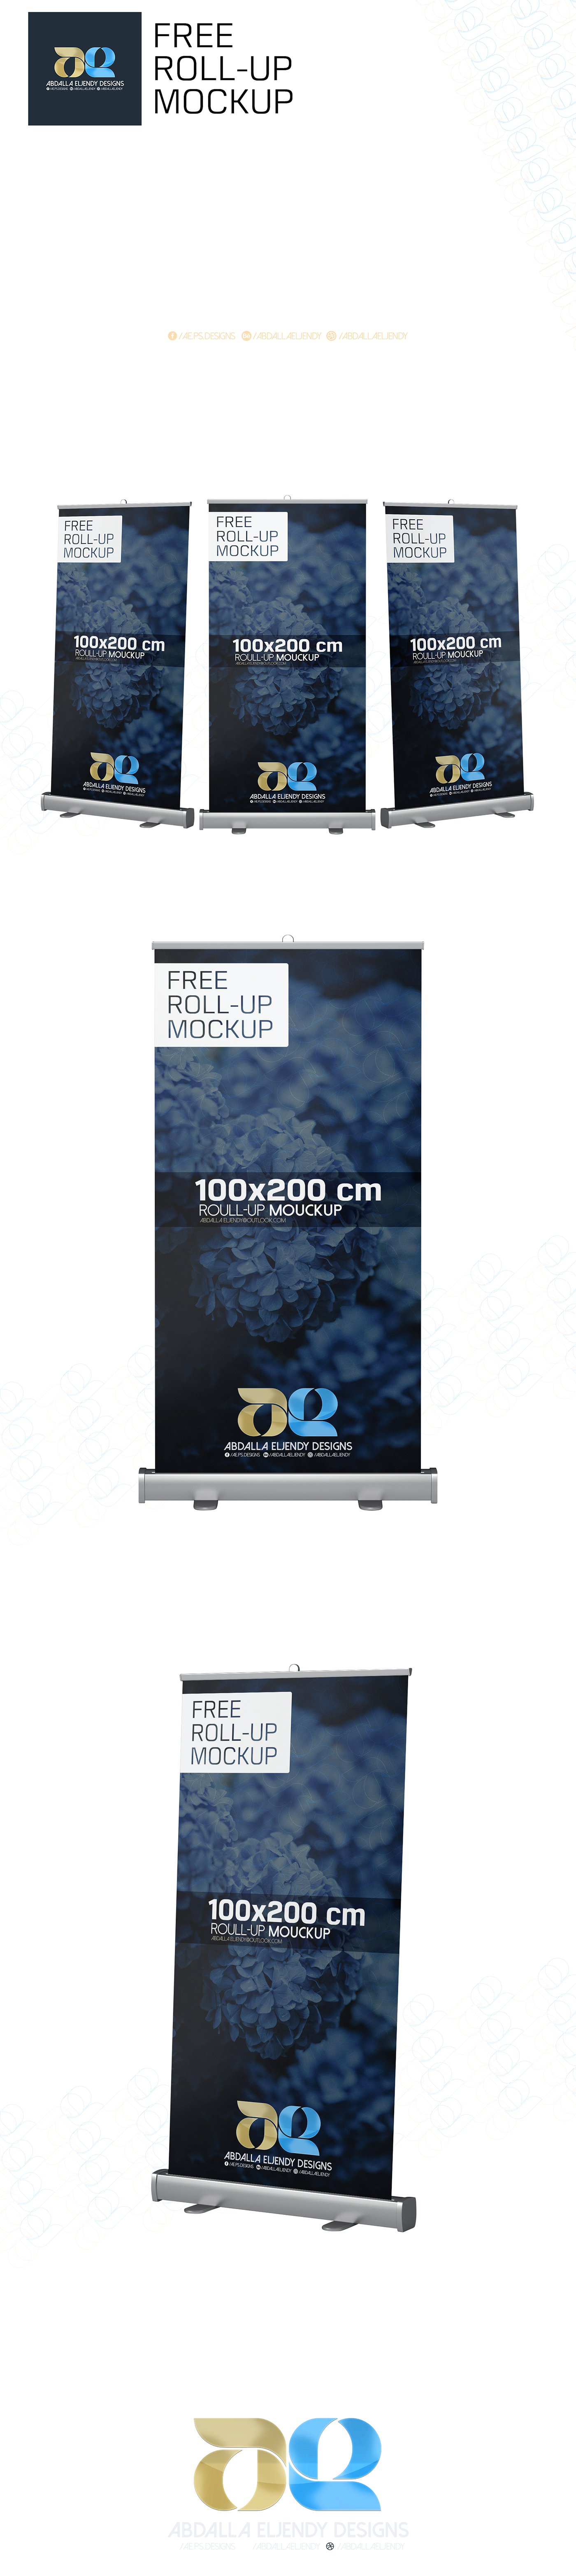 roull Roull Up free free roullup free download Mouckup Free